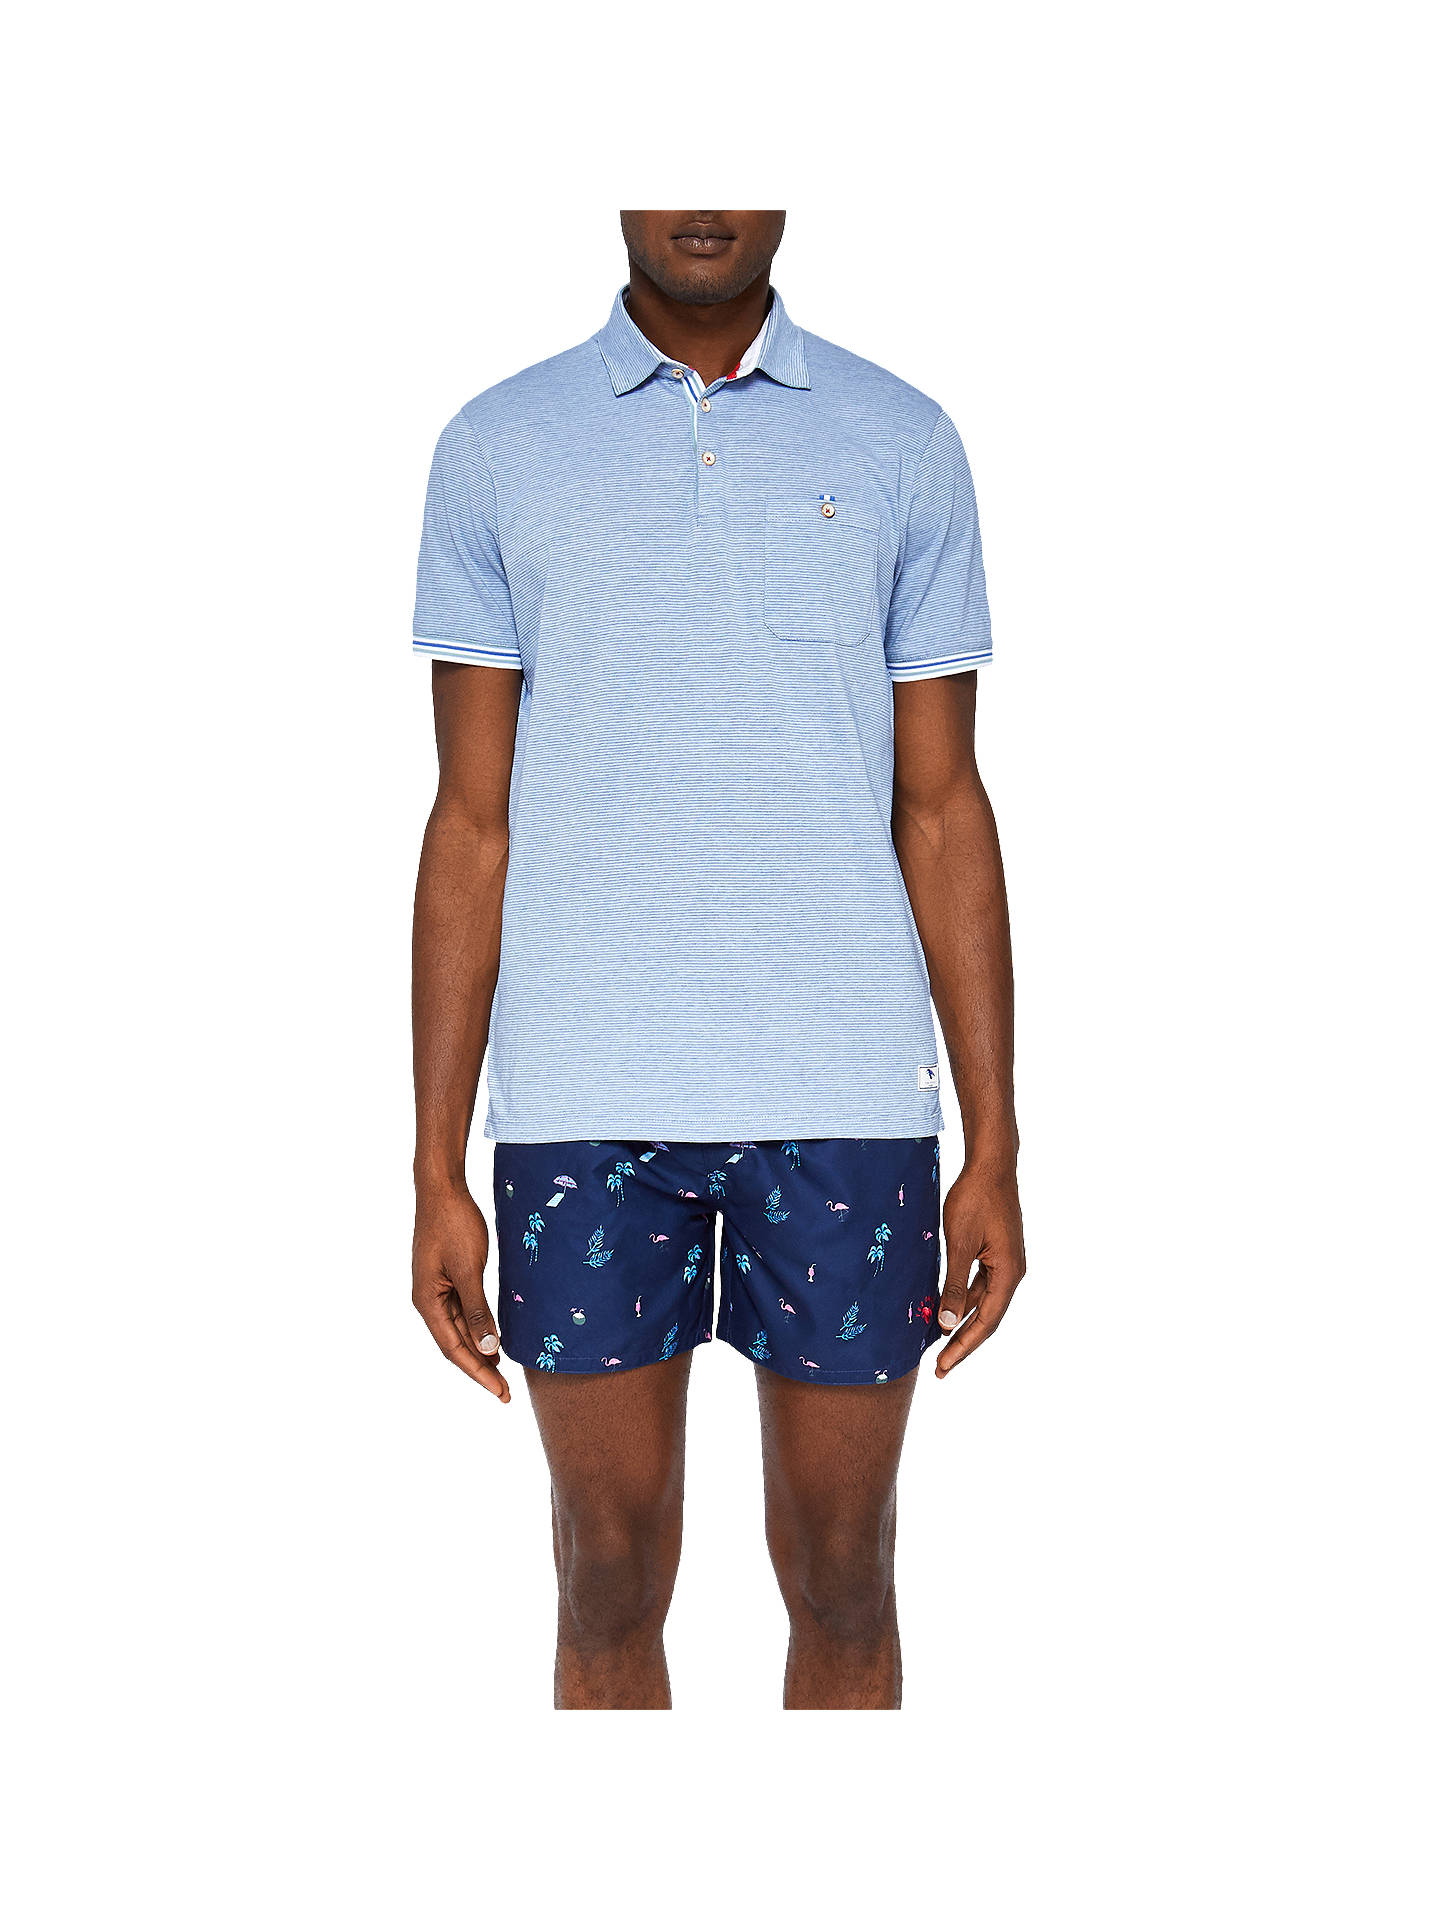 9e402838a6 ... Buy Ted Baker Gusty Swim Shorts, Navy, 1 Online at johnlewis.com ...